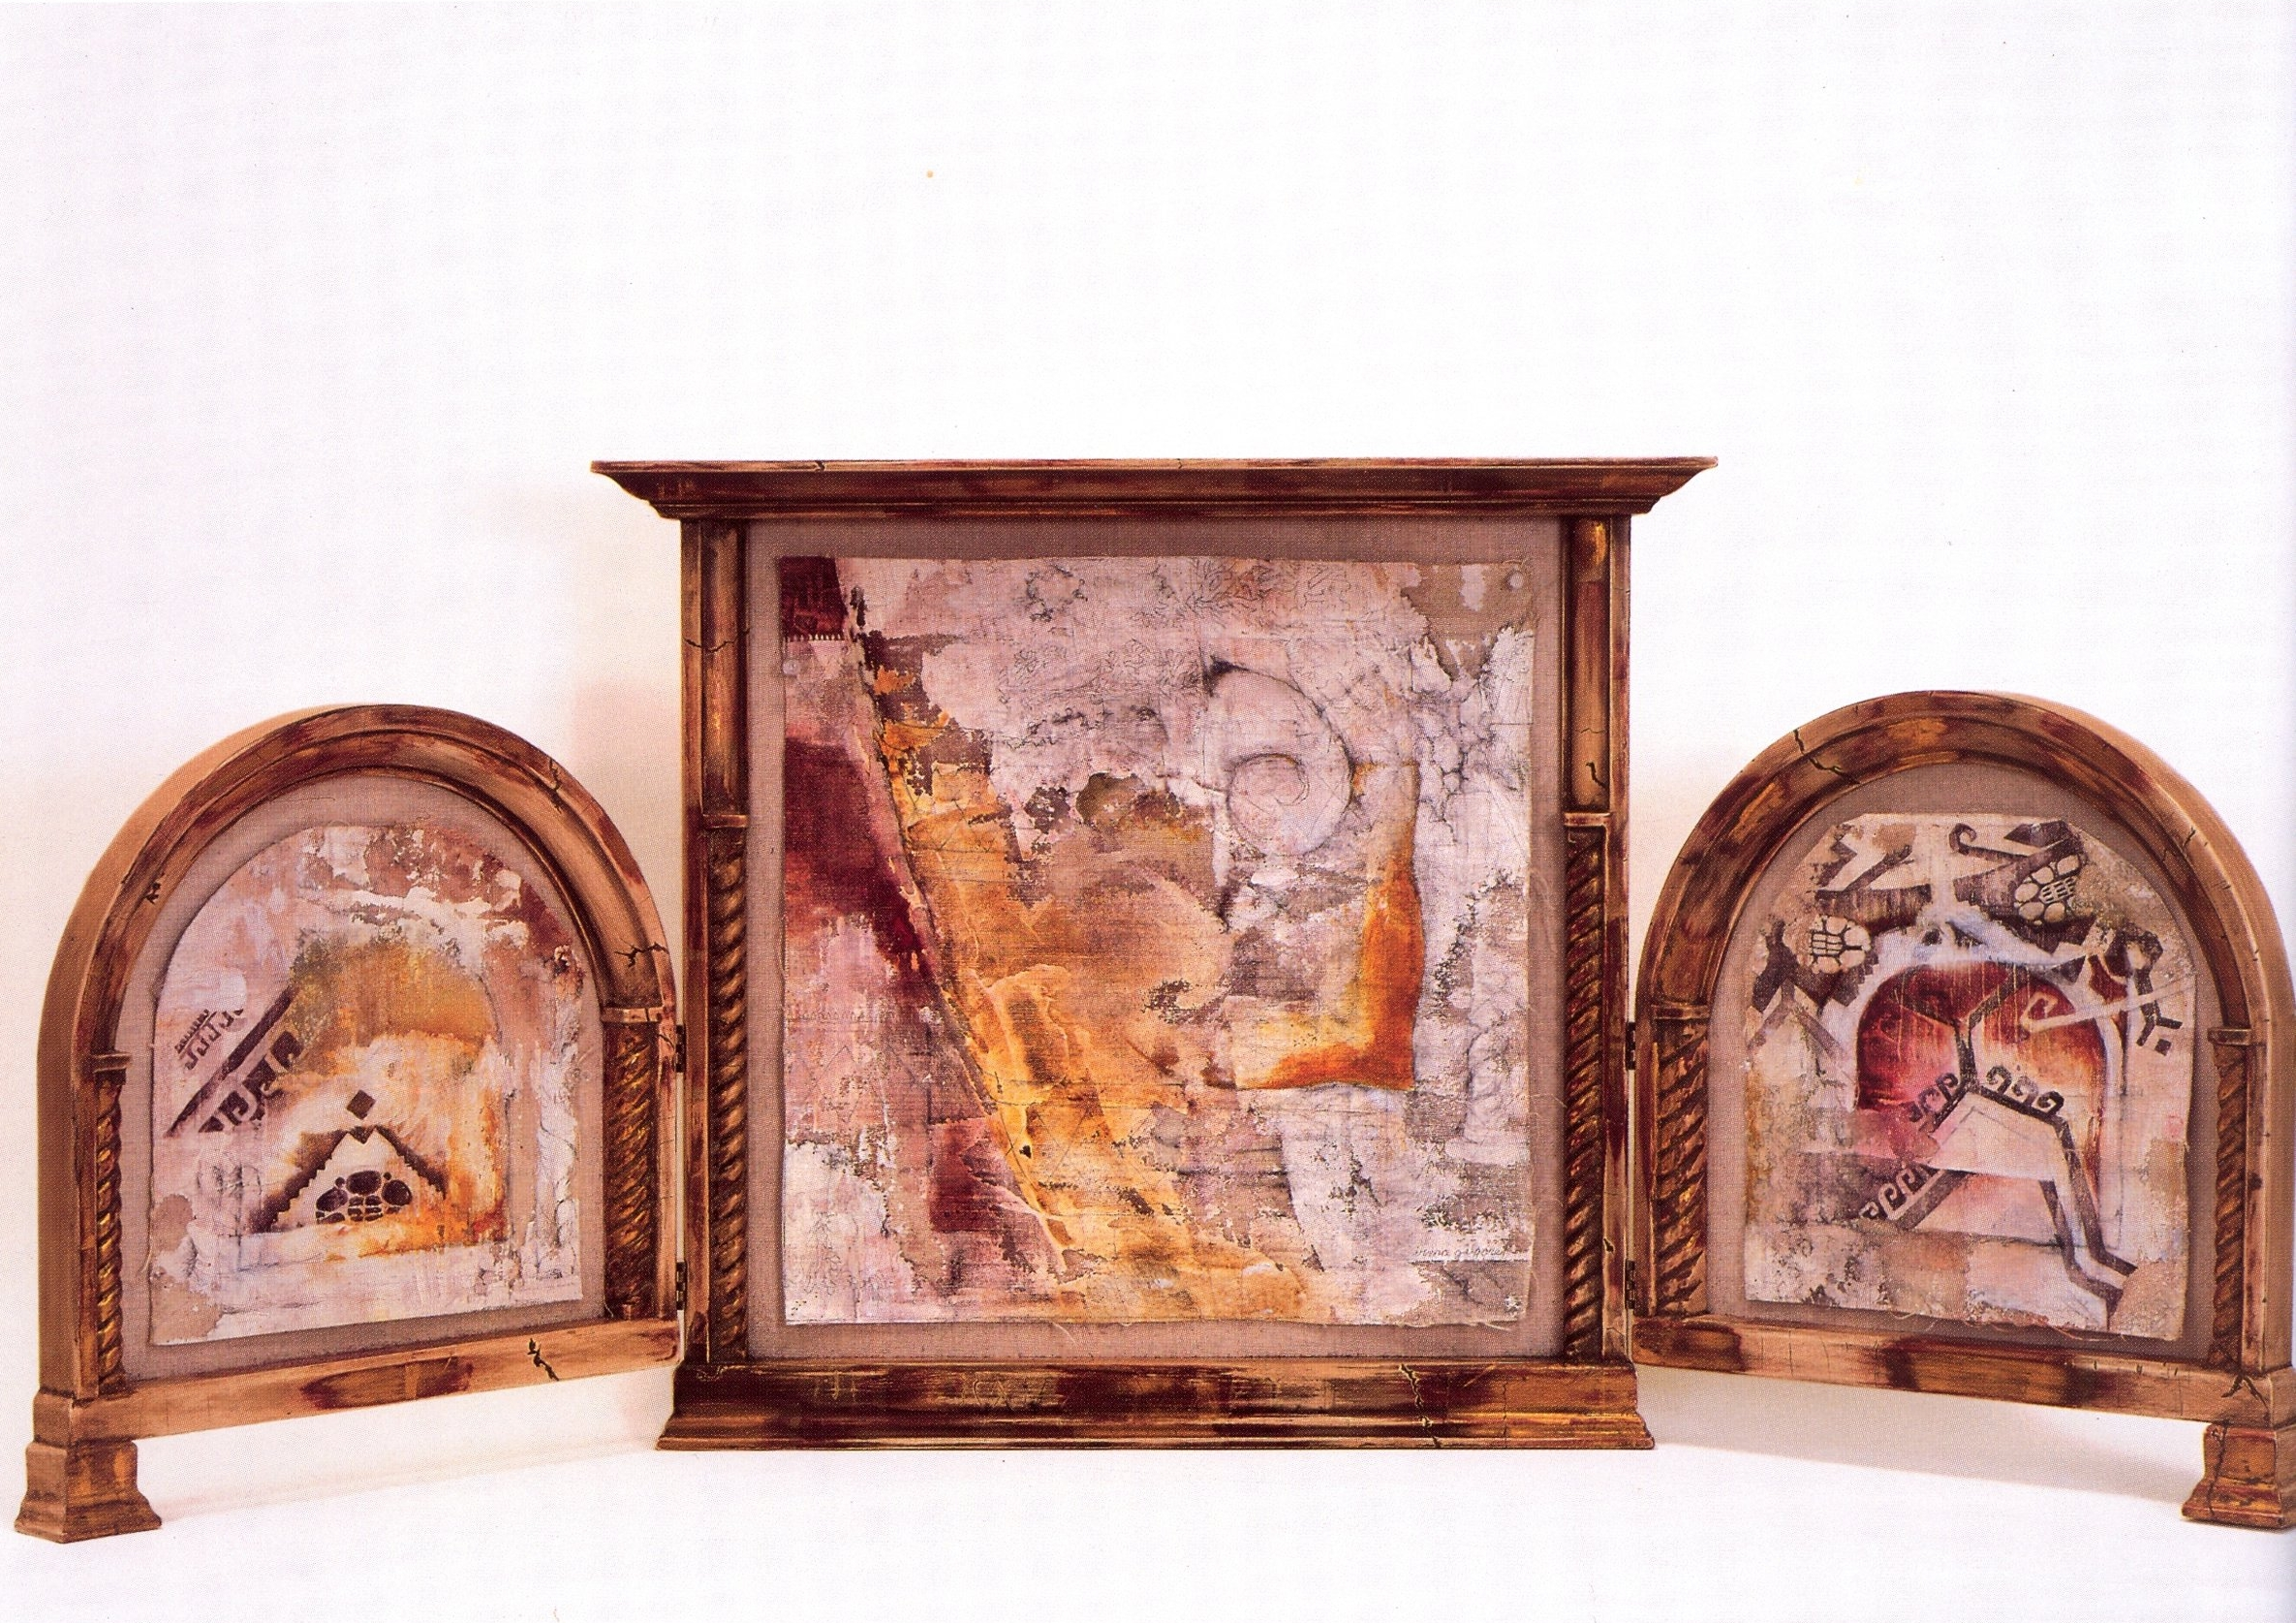 Irma Gilgore   Prayer For Peace (Triptych)  , Acrylic, gesso and graphite on raw canvas, 20 1/2'' x 49 1/2''